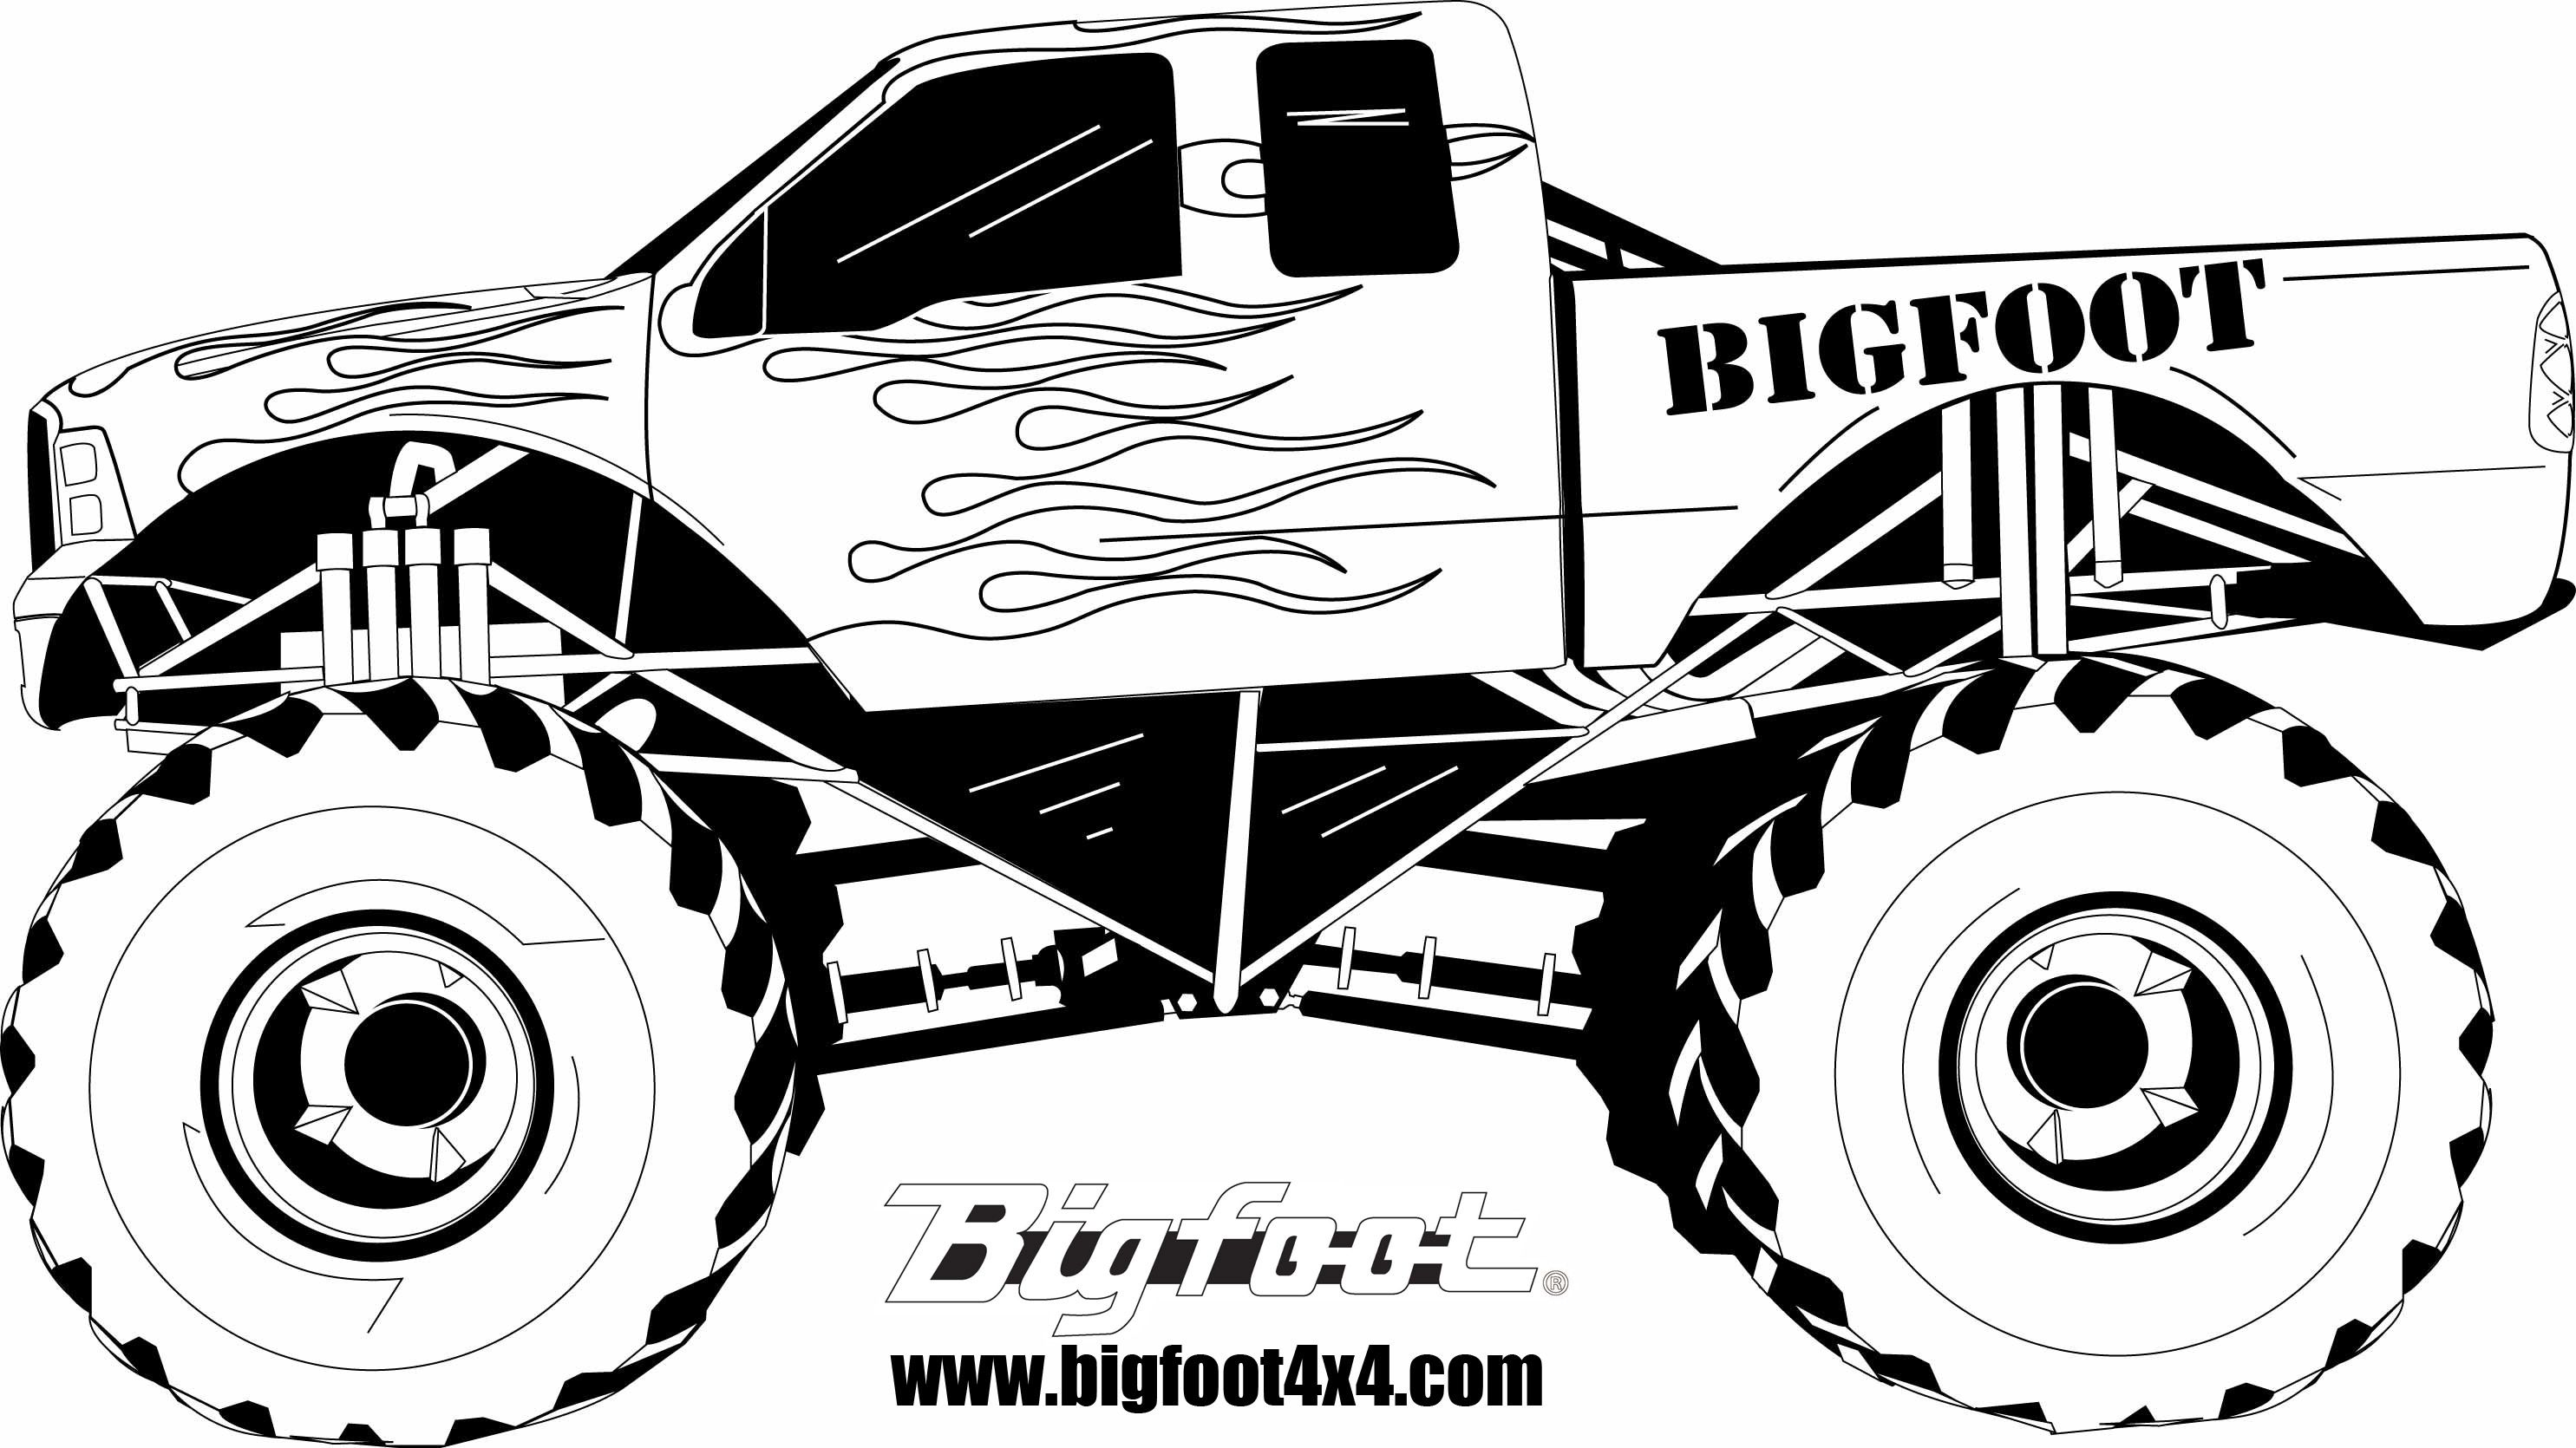 monster truck coloring pages easy monster mutt monster truck coloring pages coloring pages truck pages easy coloring monster